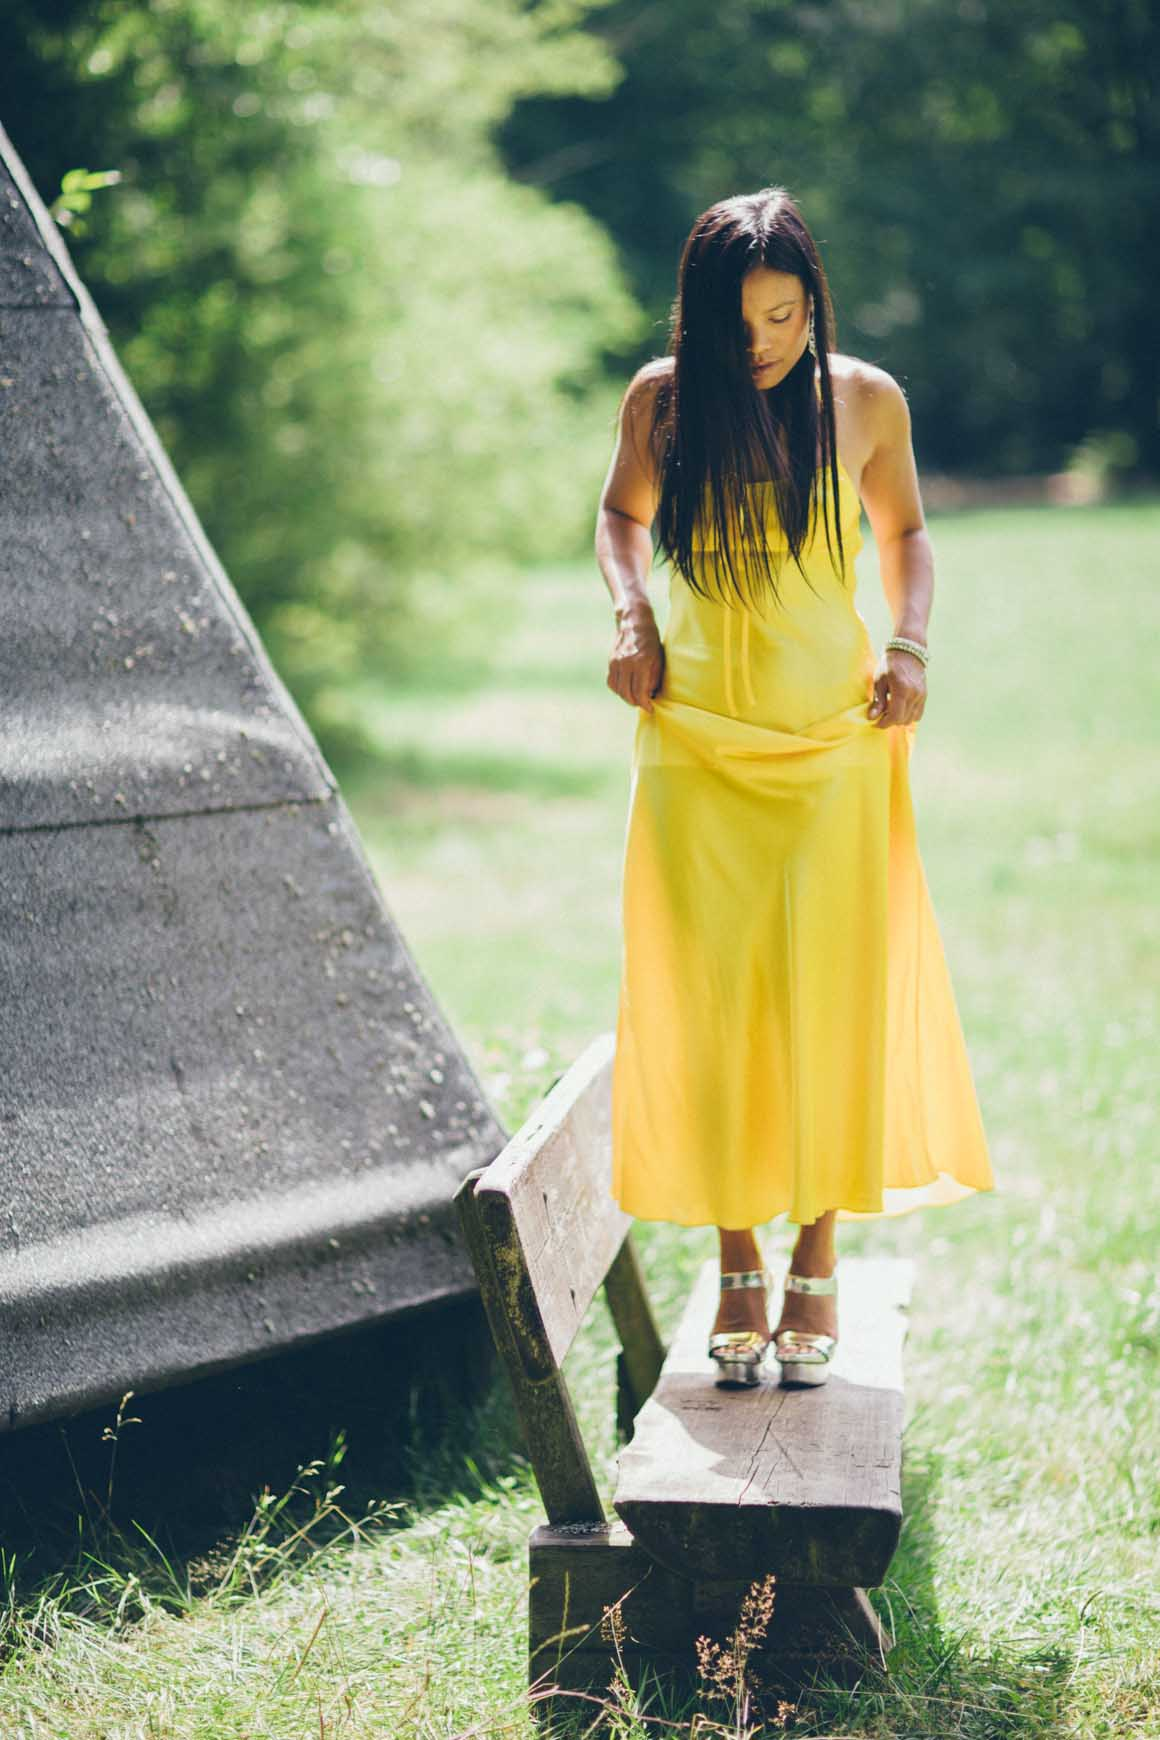 Melbourne fashion blogger turning pocahontas